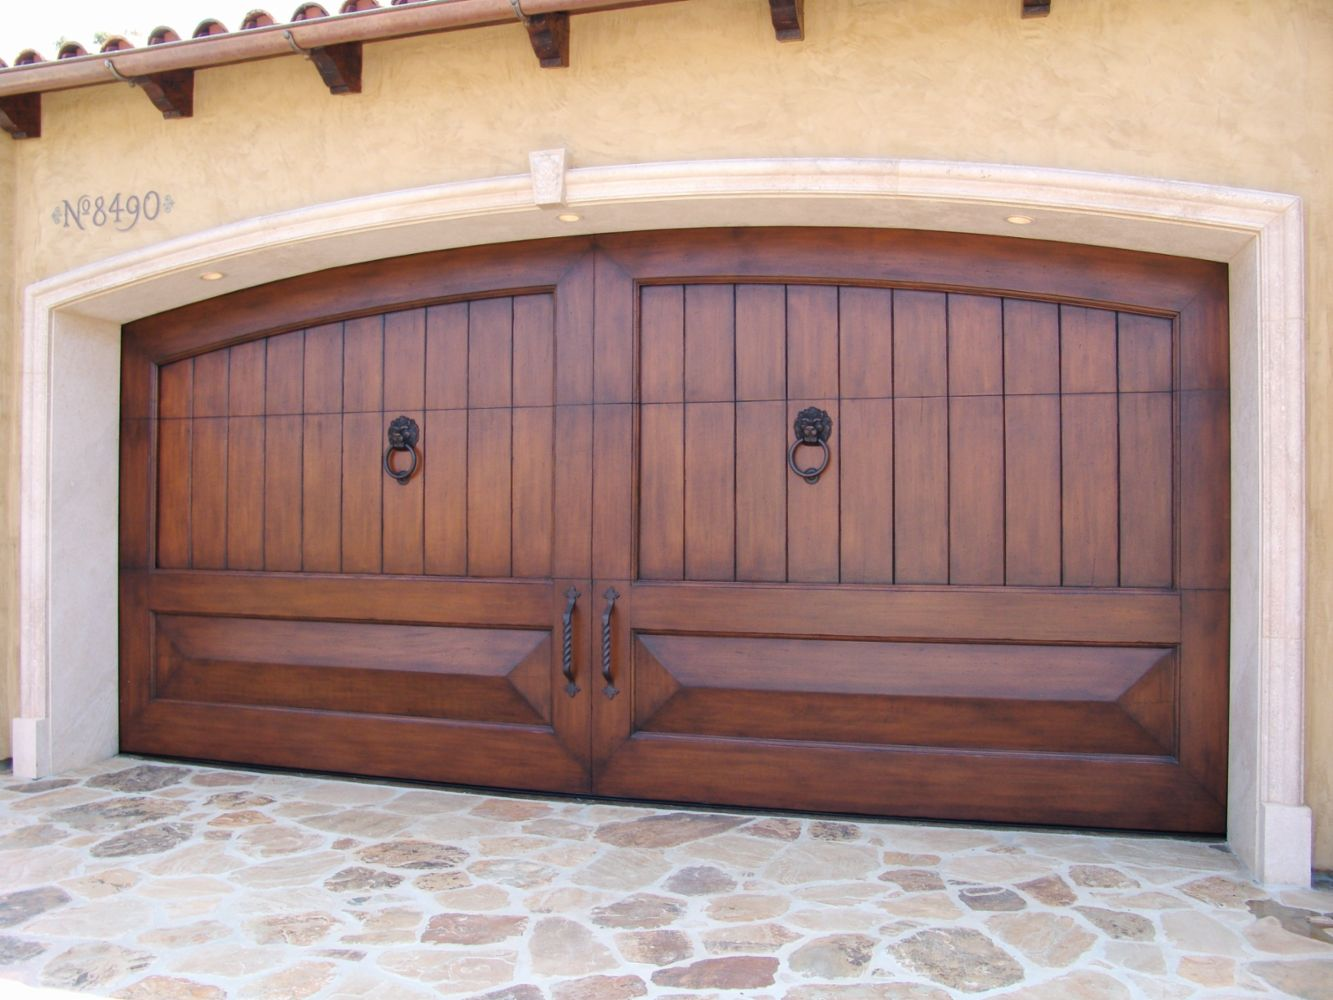 8185784826 In Tarzana Ca Tarzana Quality Garage Door Repair